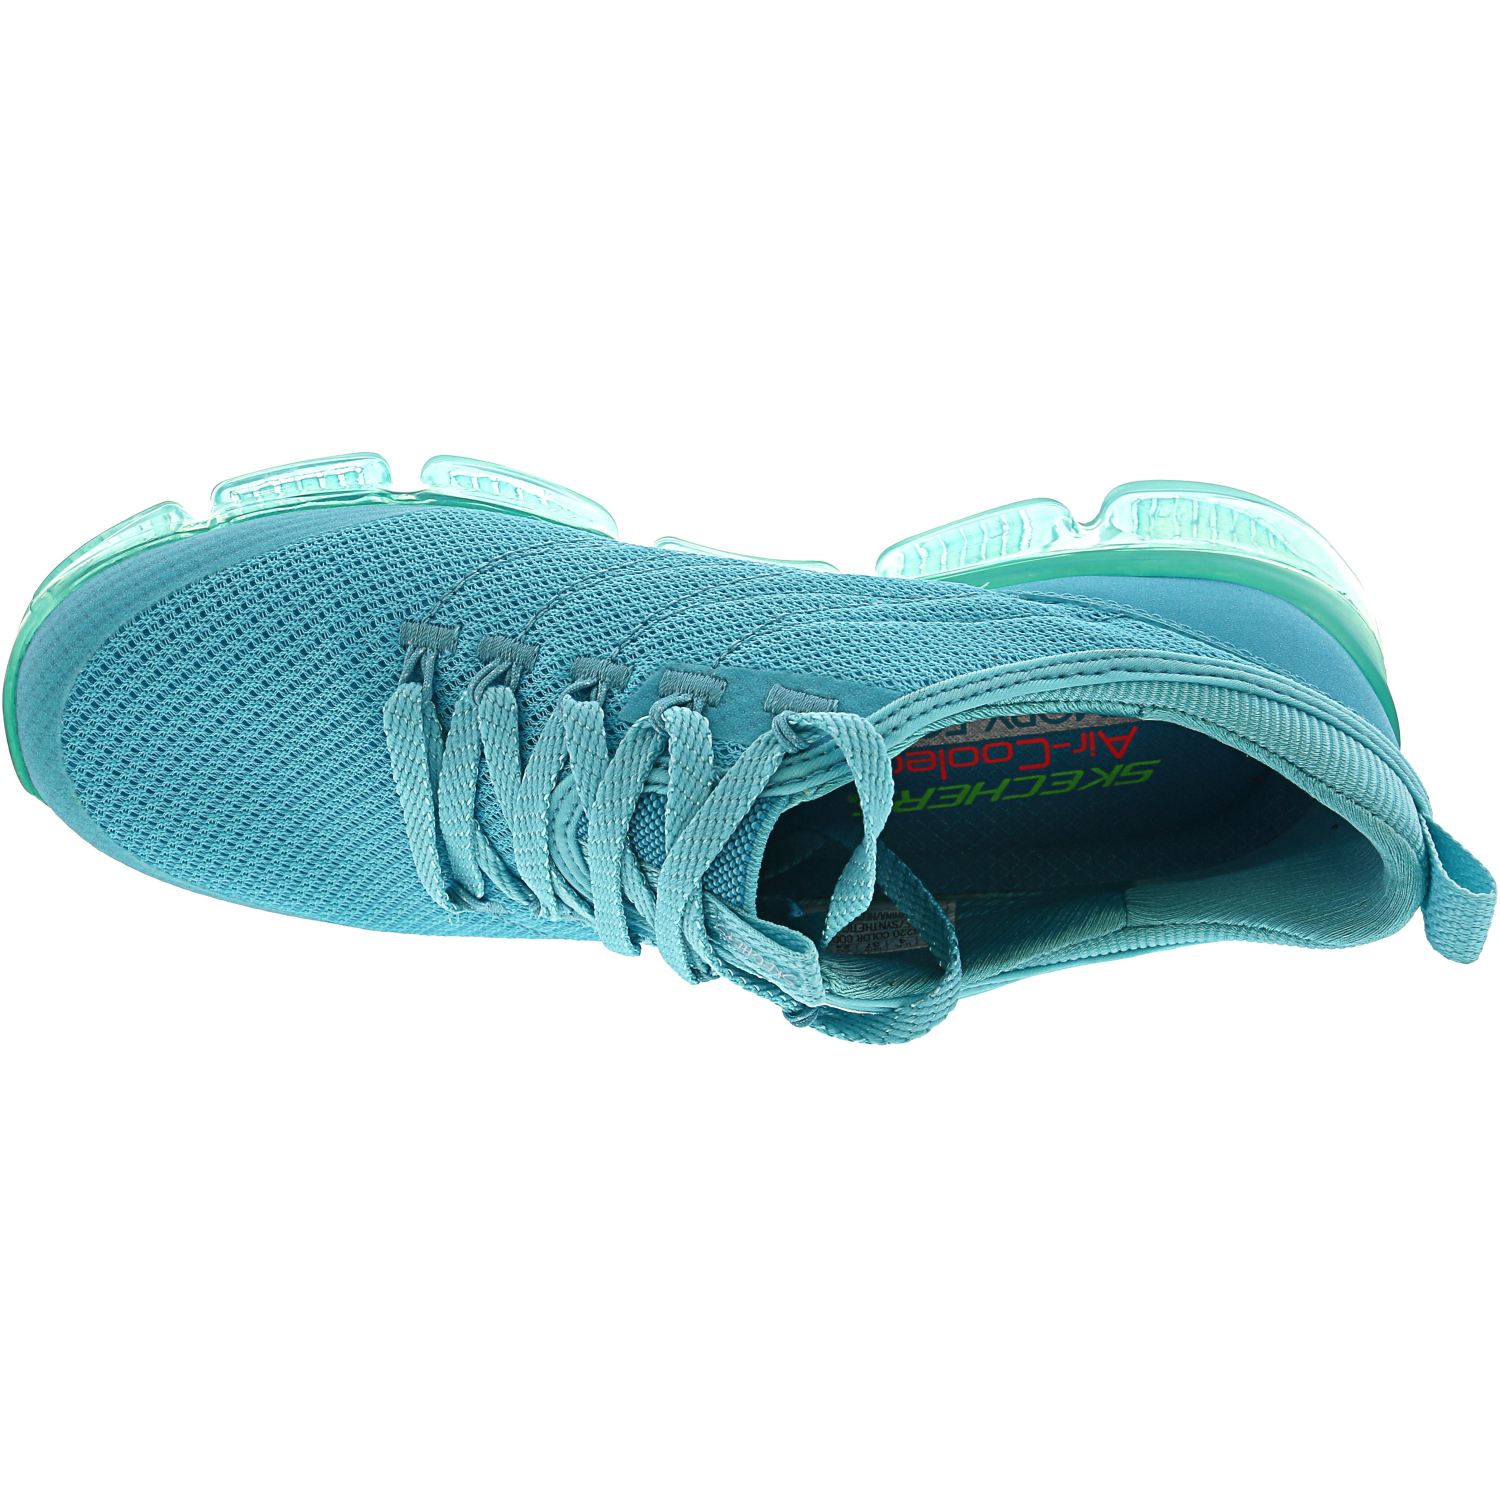 Skechers-Women-039-s-Skech-Air-92-Significance-Ankle-High-Mesh-Training-Shoes thumbnail 9